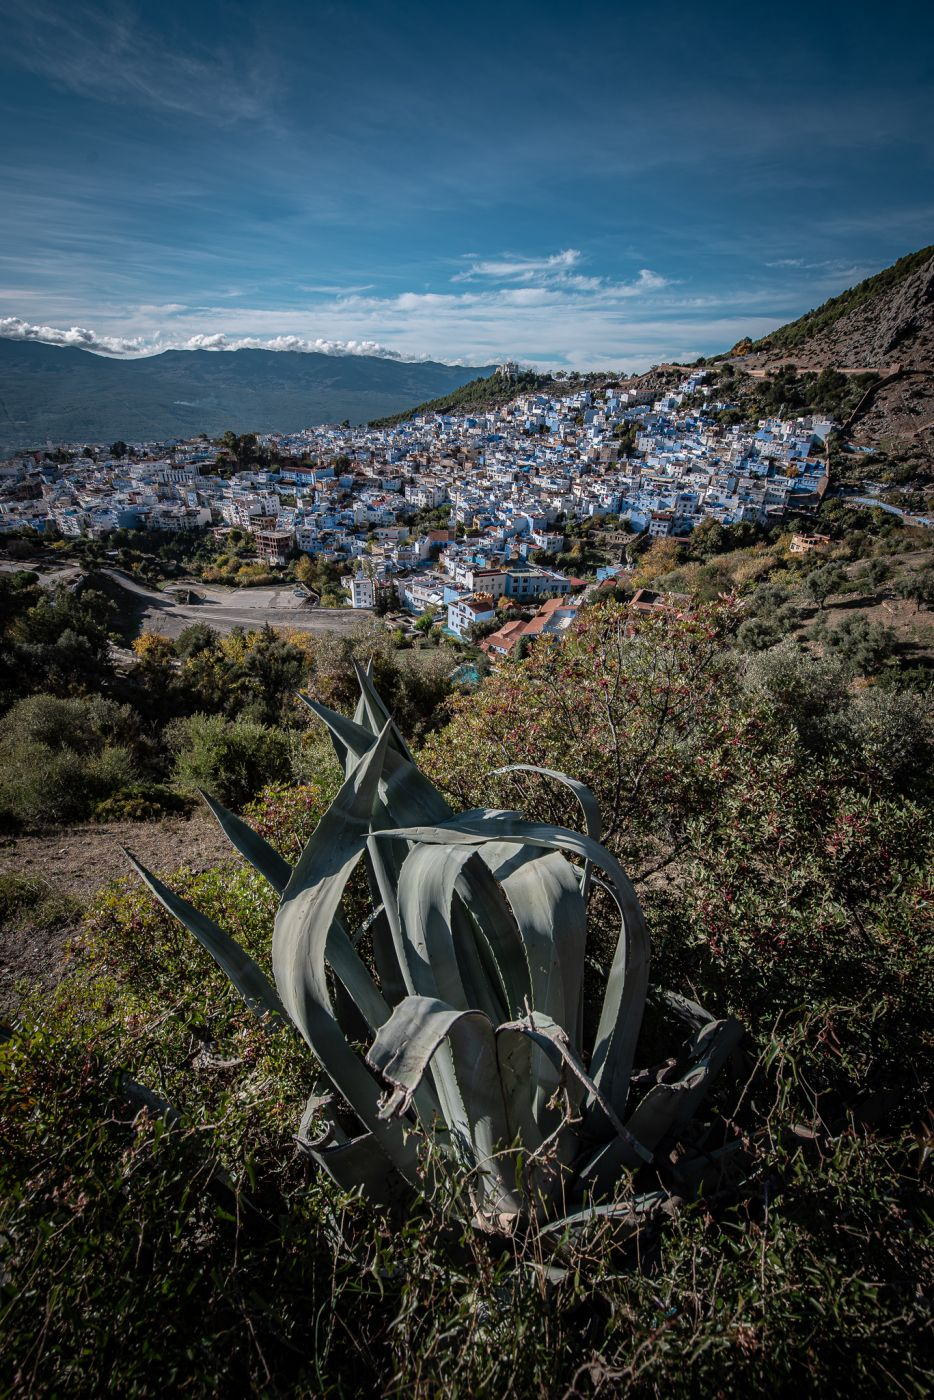 Road to Mosquée, Chefchaouen, Morocco